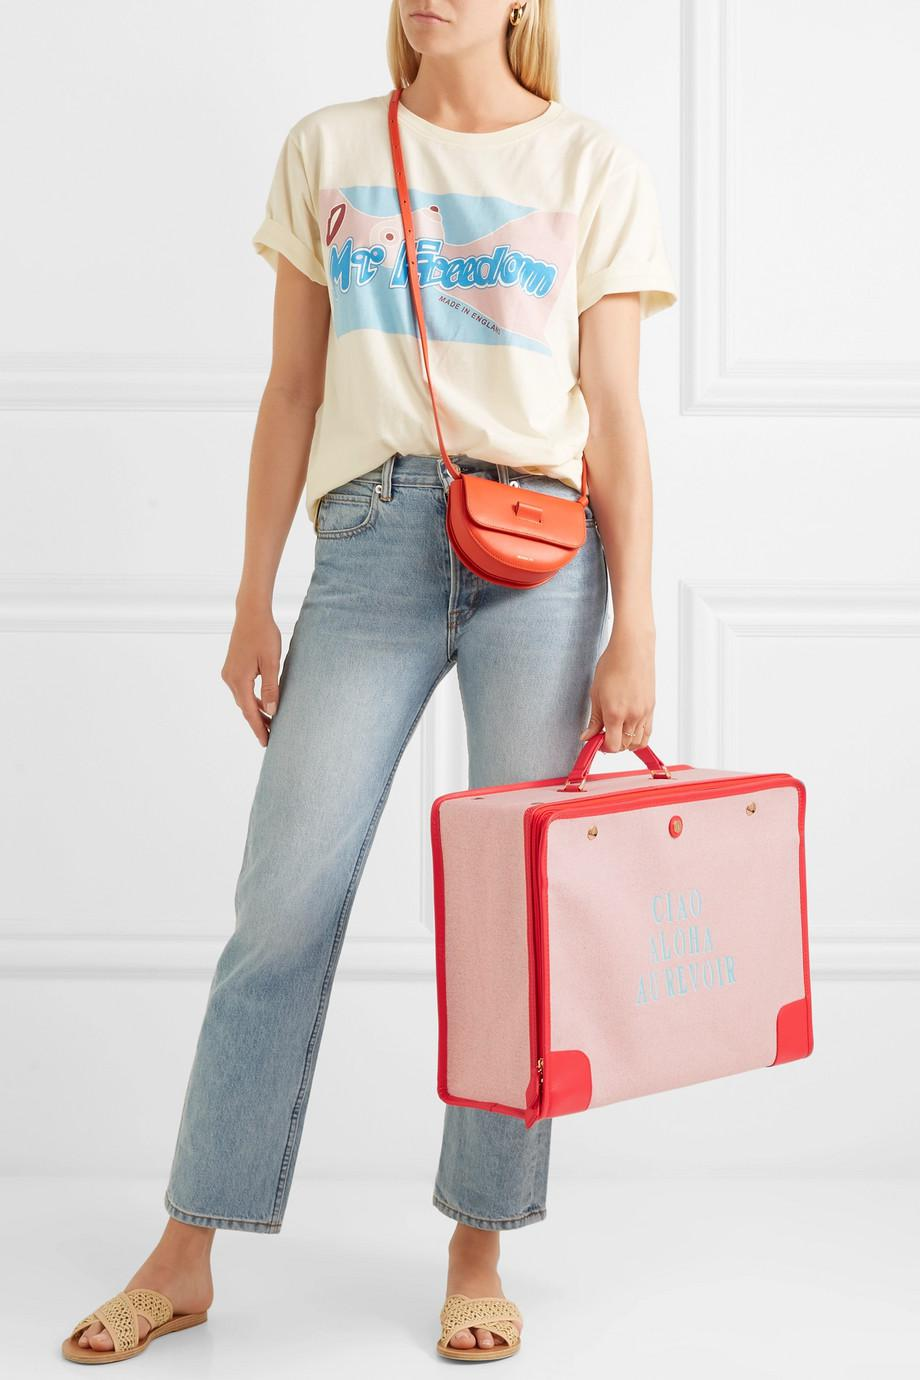 Stowaway Leather-trimmed Printed Canvas Suitcase - Red Paravel msXZtlgKgL